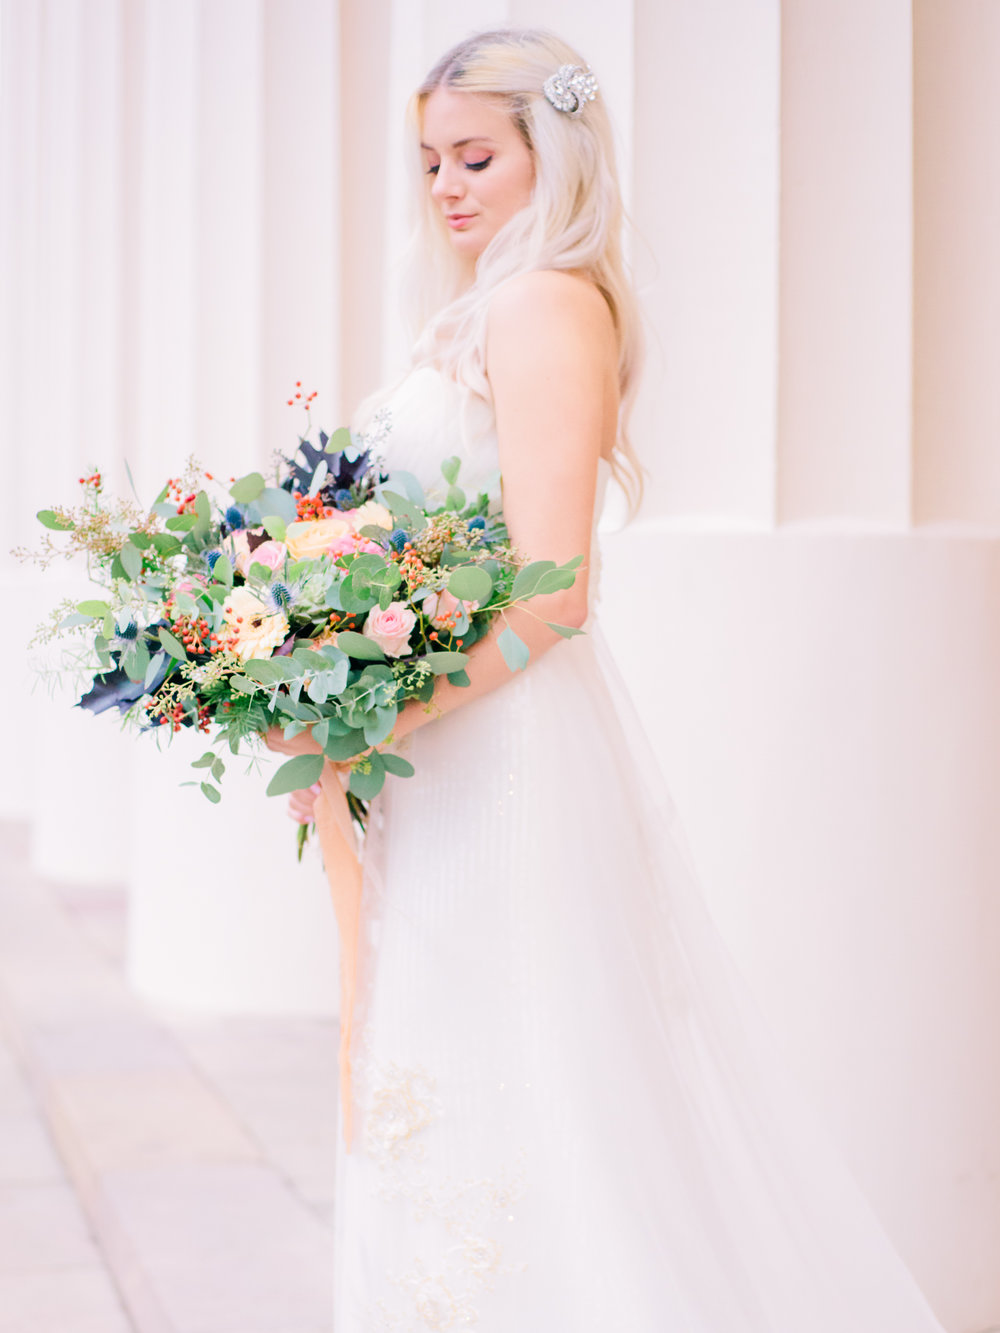 Elegant Organic Fall Swedish Bridal Wedding Styled Shoot - Erika Alvarenga Photography-64.jpg